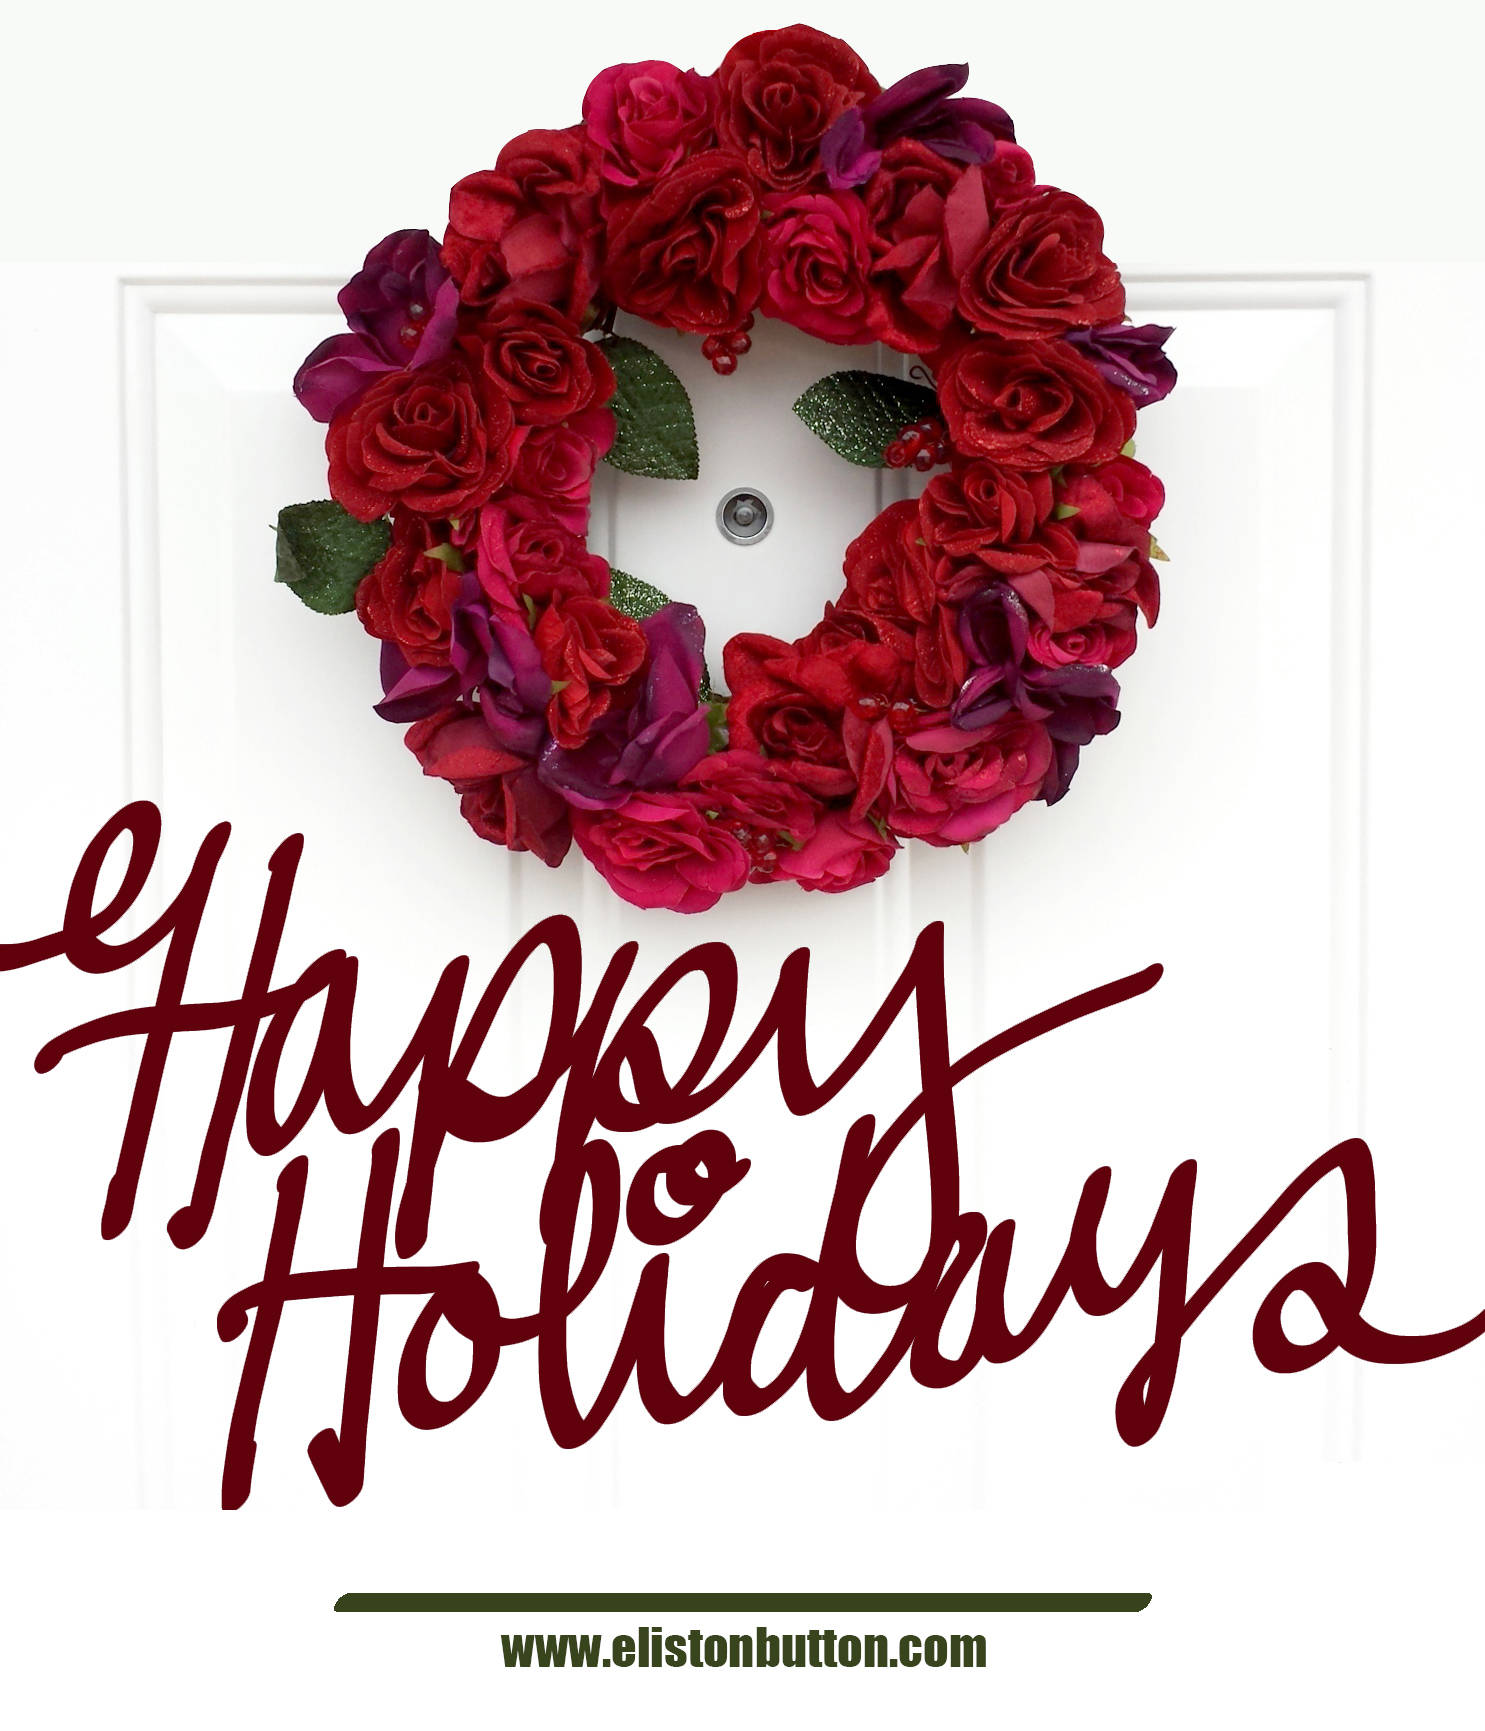 Happy Holidays Hand Lettering and Rose Floral Christmas Wreath with Button Holly and Berries by Eliston Button - Merry Christmas, Happy Holidays and a Magical New Year! at www.elistonbutton.com - Eliston Button - That Crafty Kid – Art, Design, Craft & Adventure.